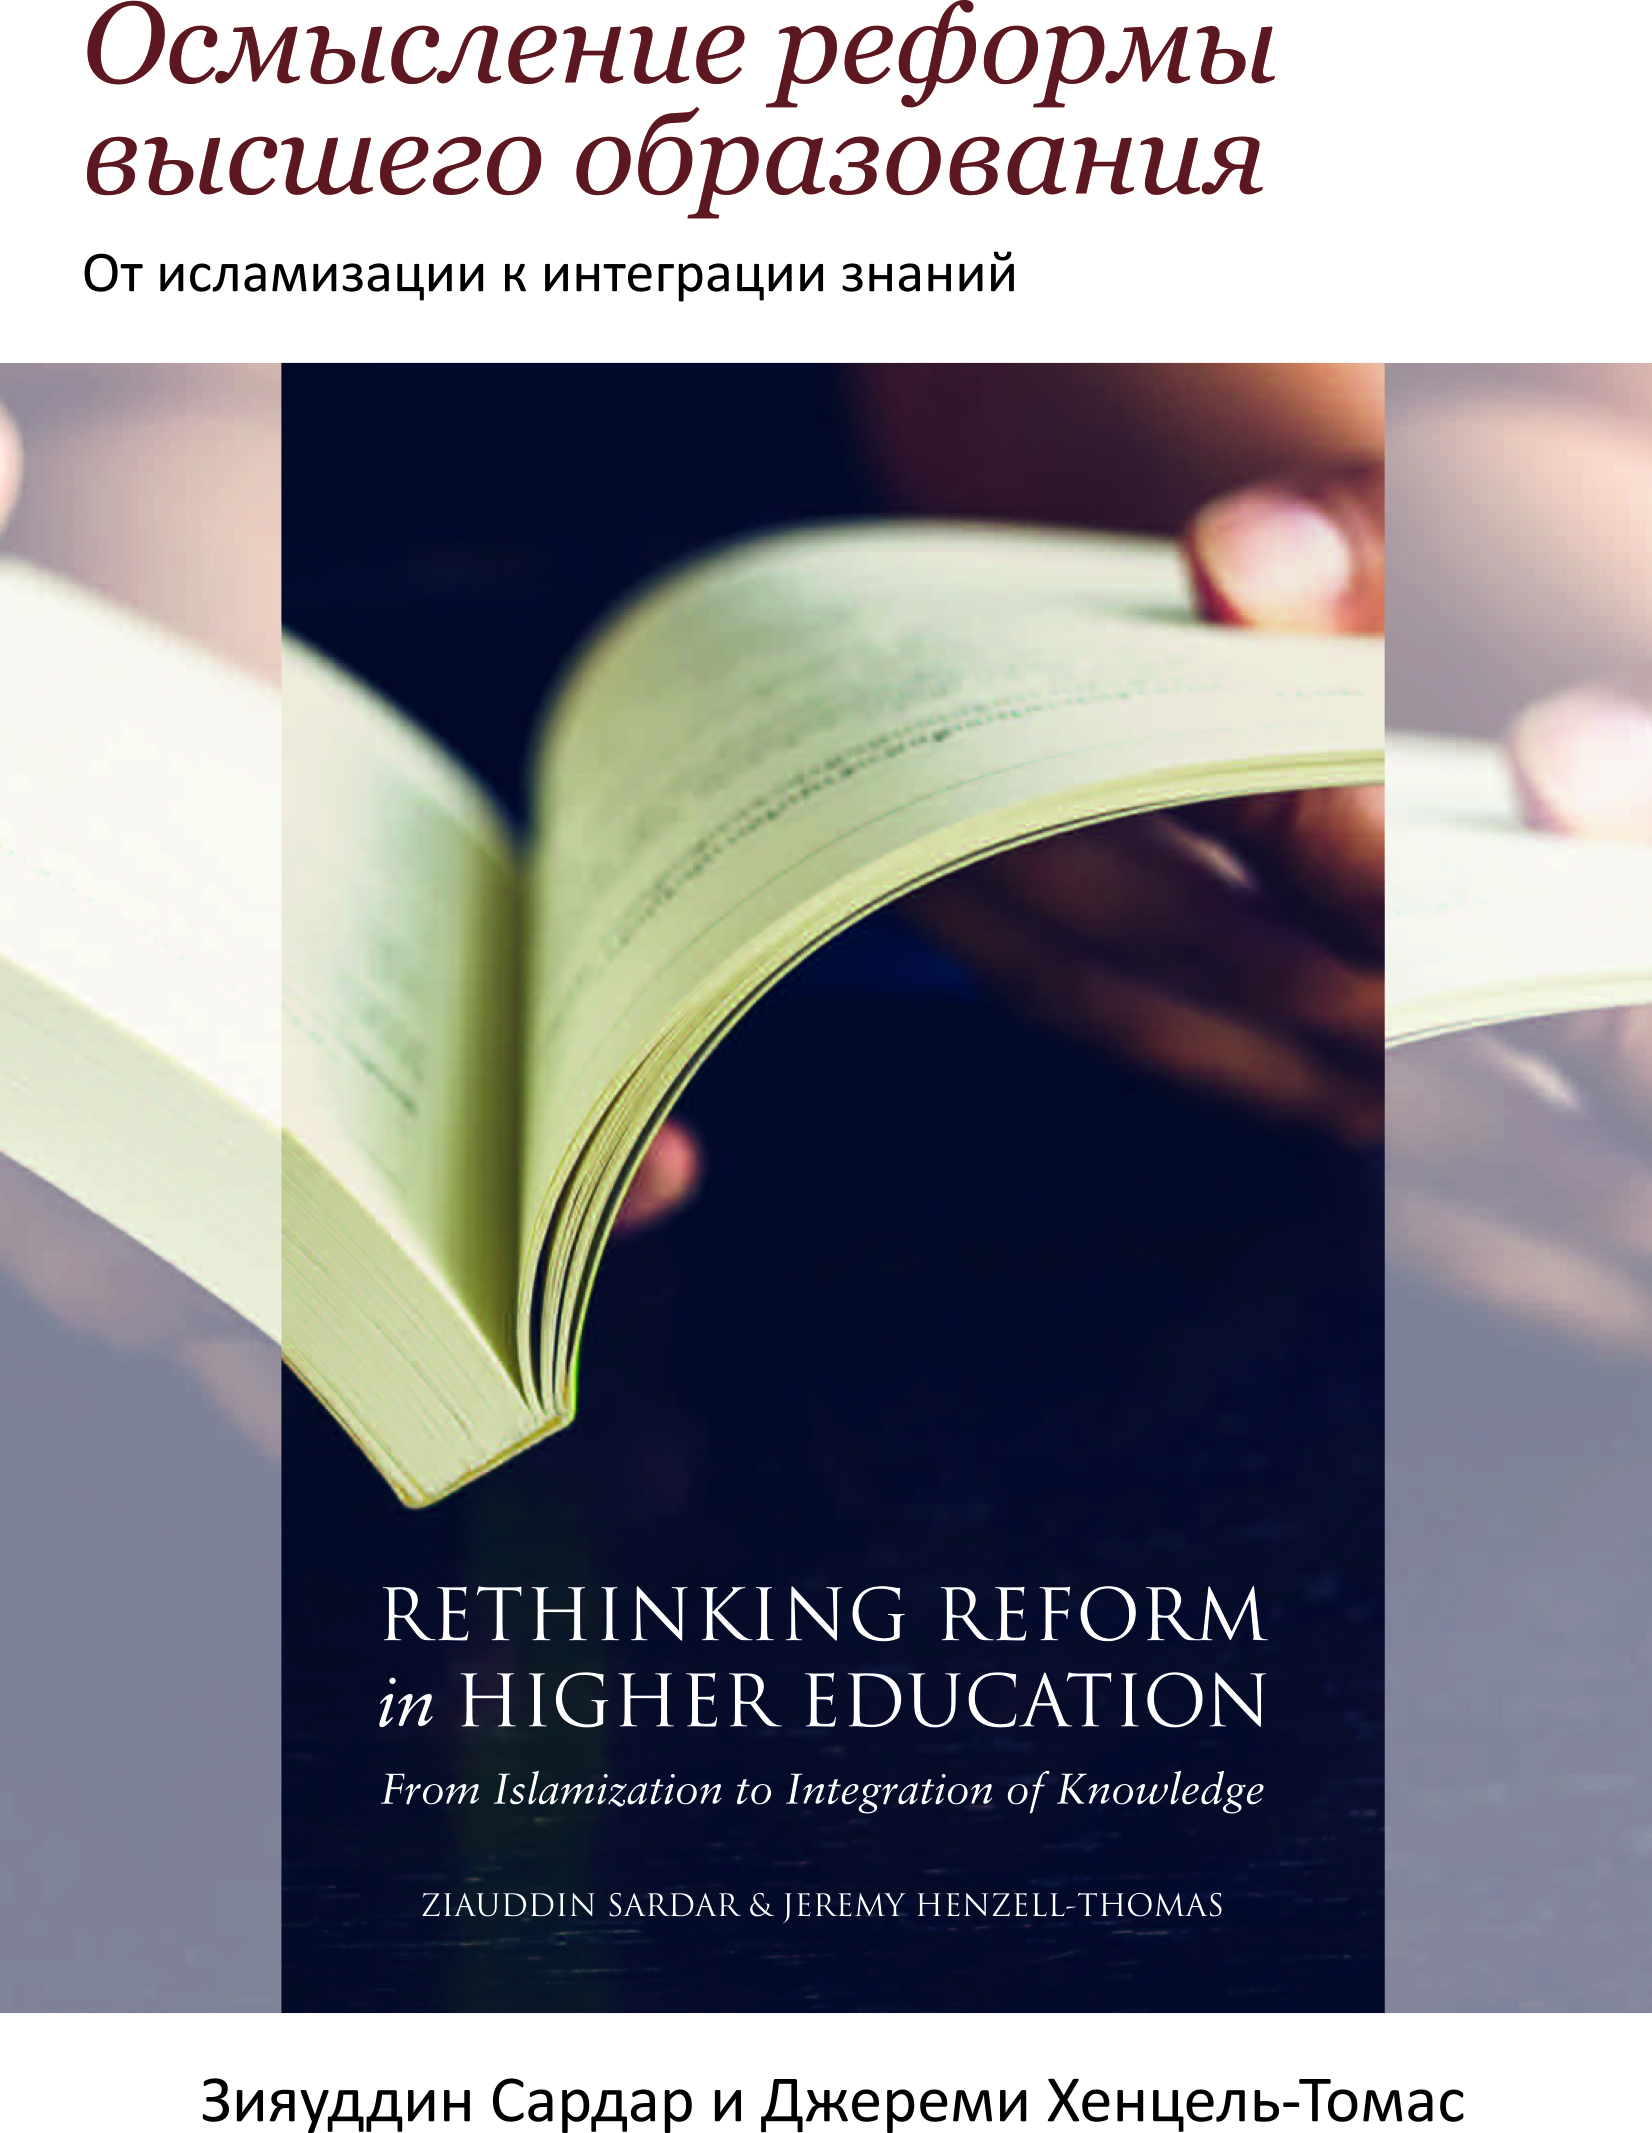 Rethinking Reform in Higher Education: From Islamization to Integration